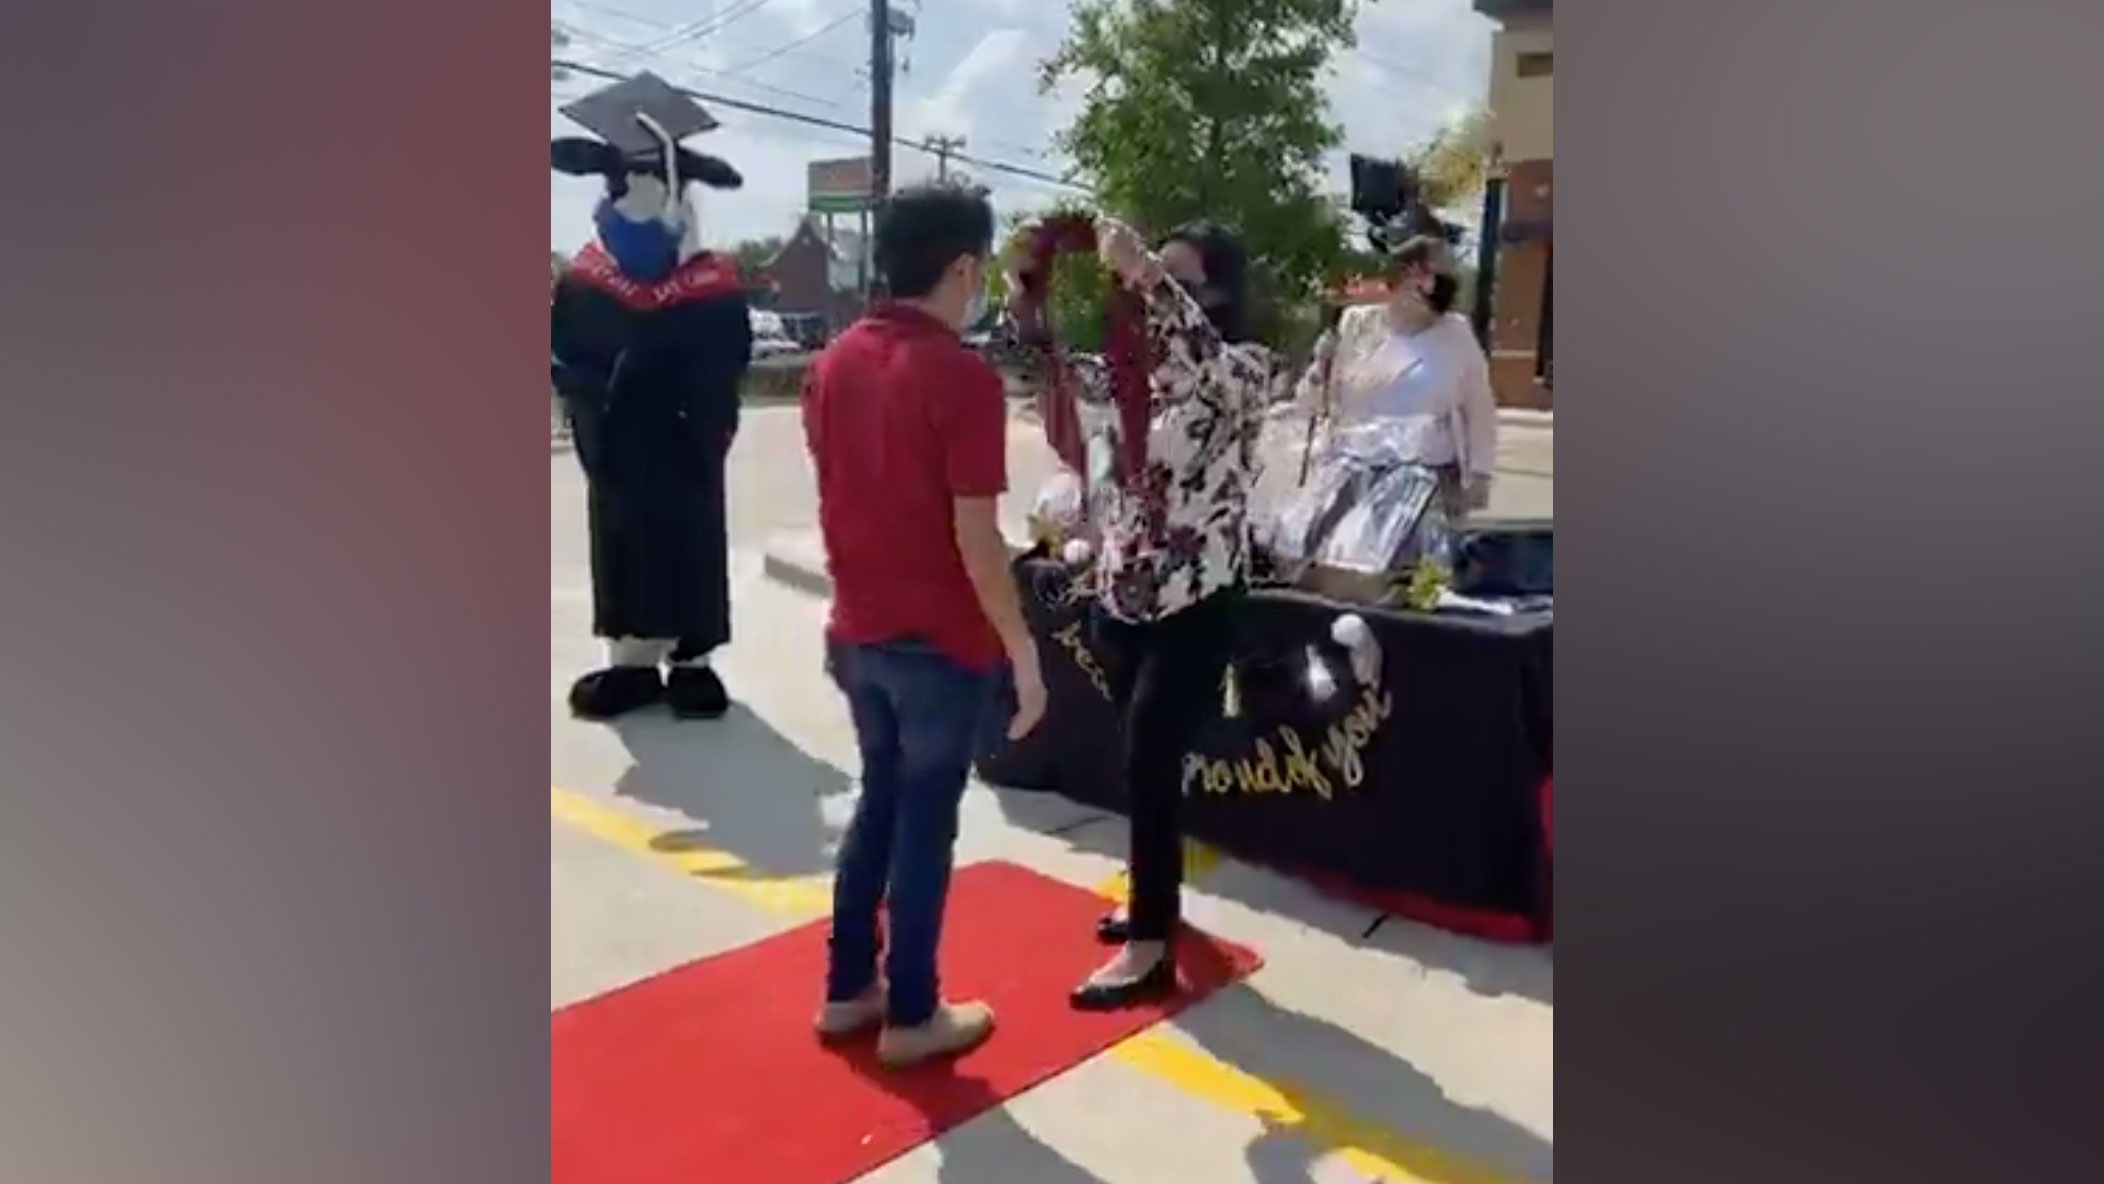 This Chick-fil-A in San Antonio hosted its own high school graduation for employees